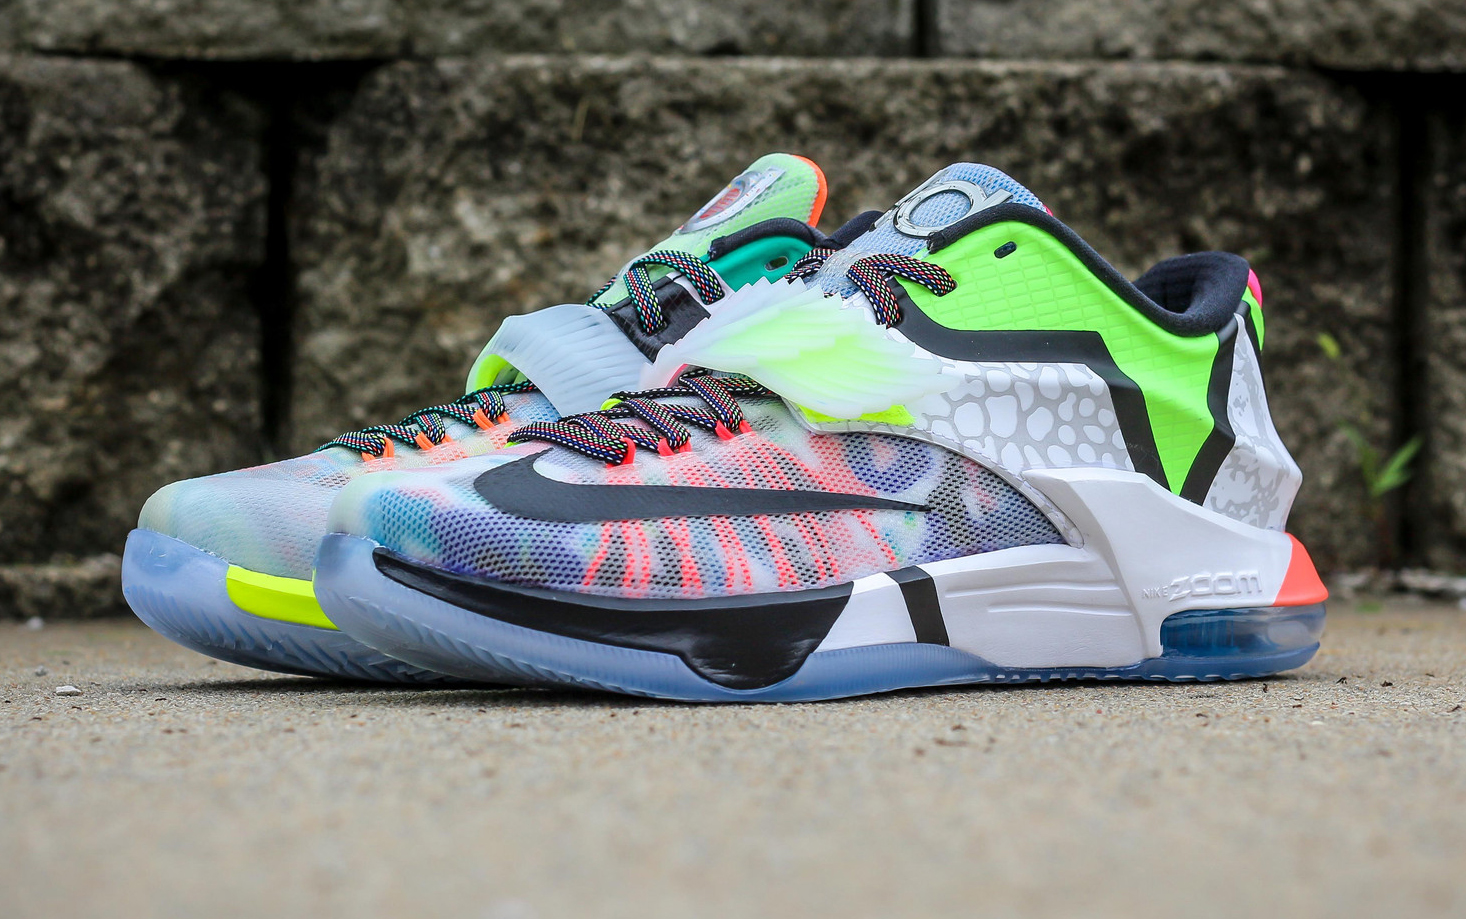 What the kd 7 release date in Brisbane